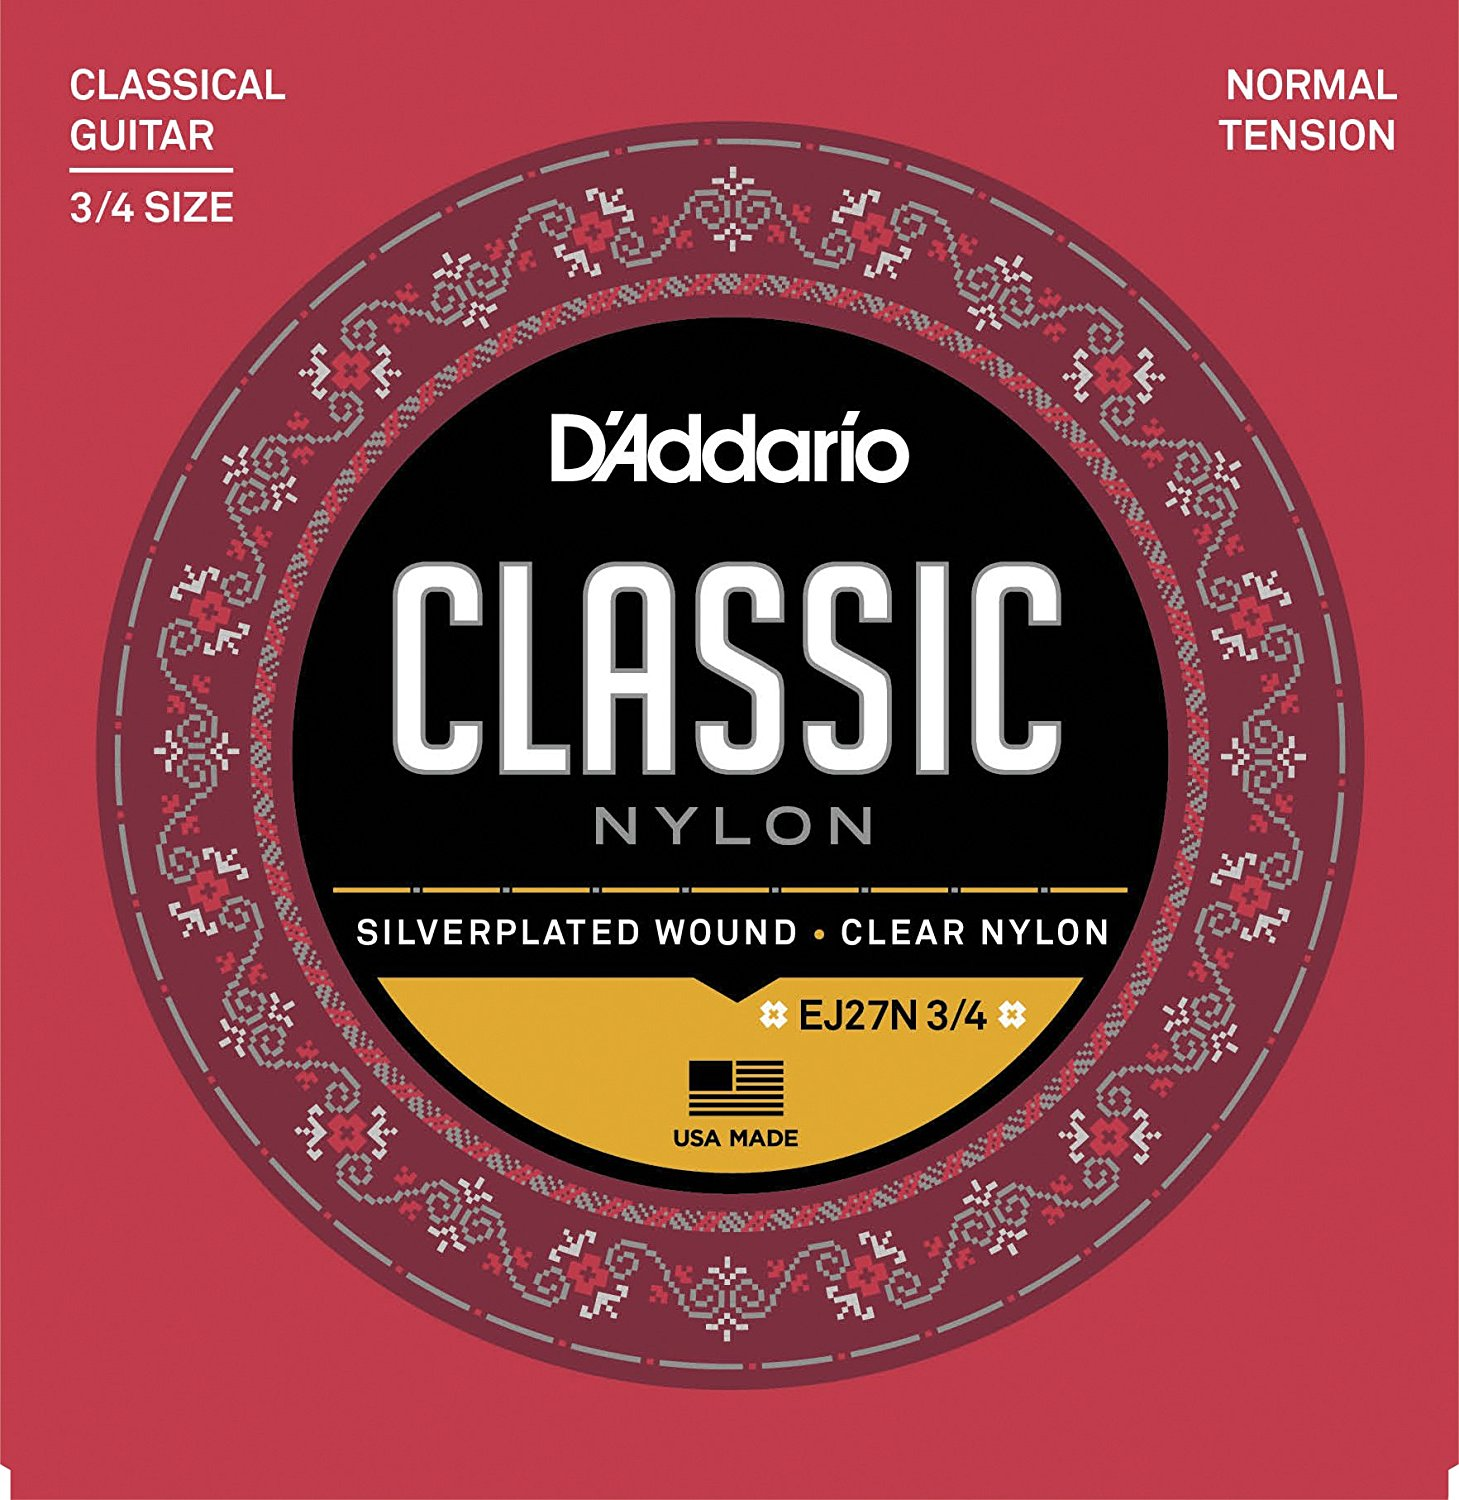 D'Addario EJ27N 3 4 Student Nylon Fractional Classical Guitar Strings, Normal Tension,... by